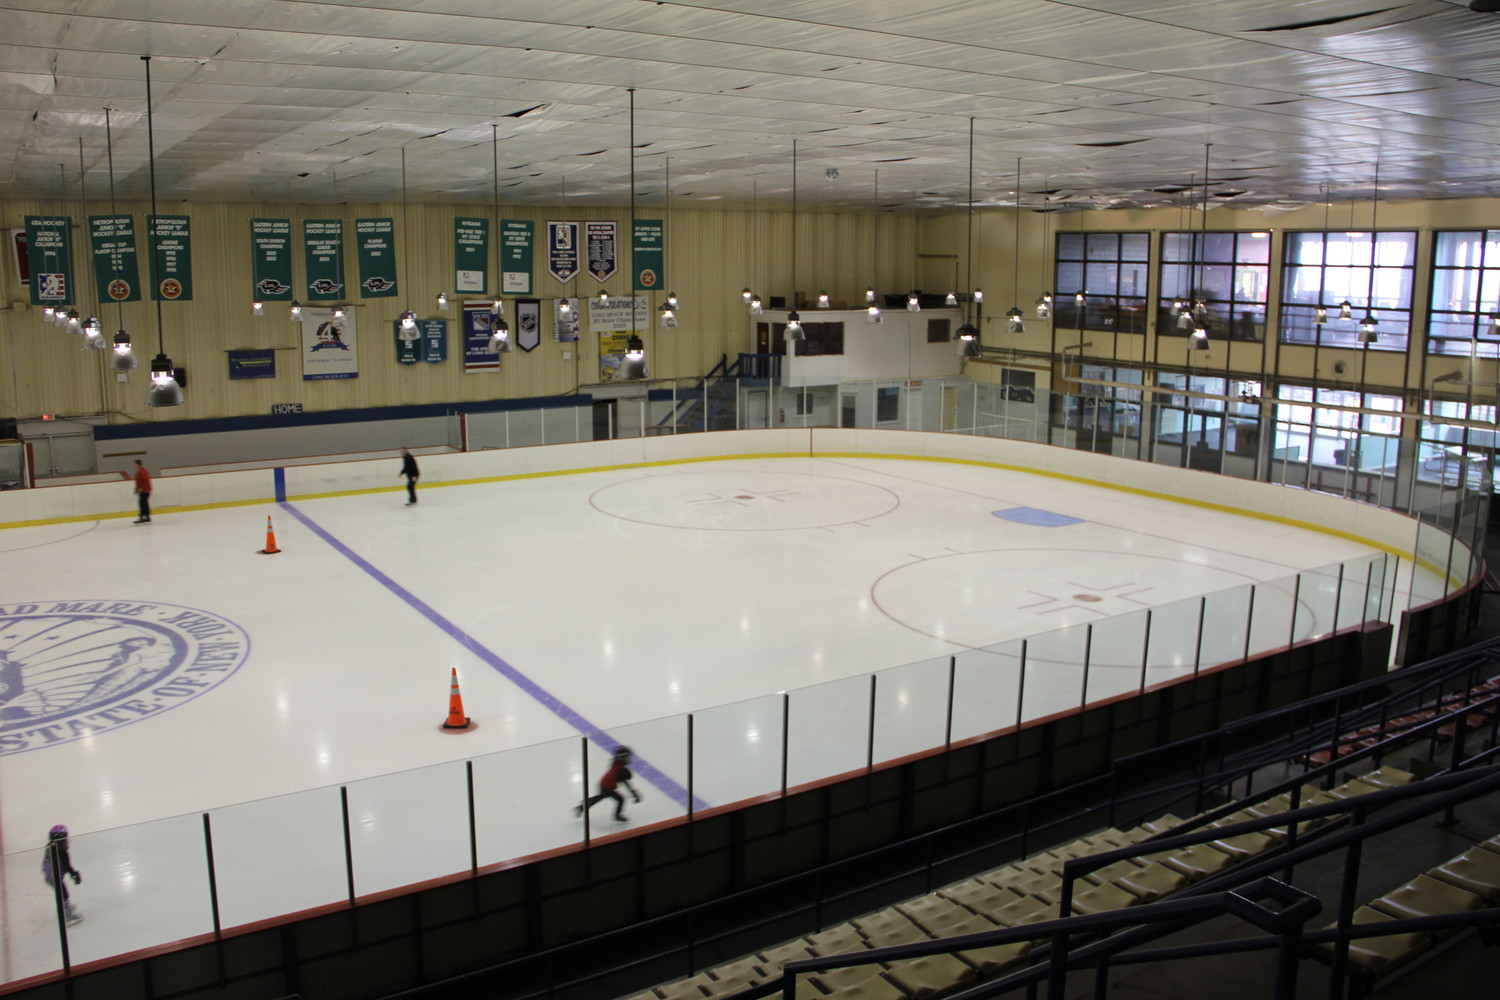 The city hired a company to renovate the bathrooms and locker rooms in the Recreation Center's Ice Arena.